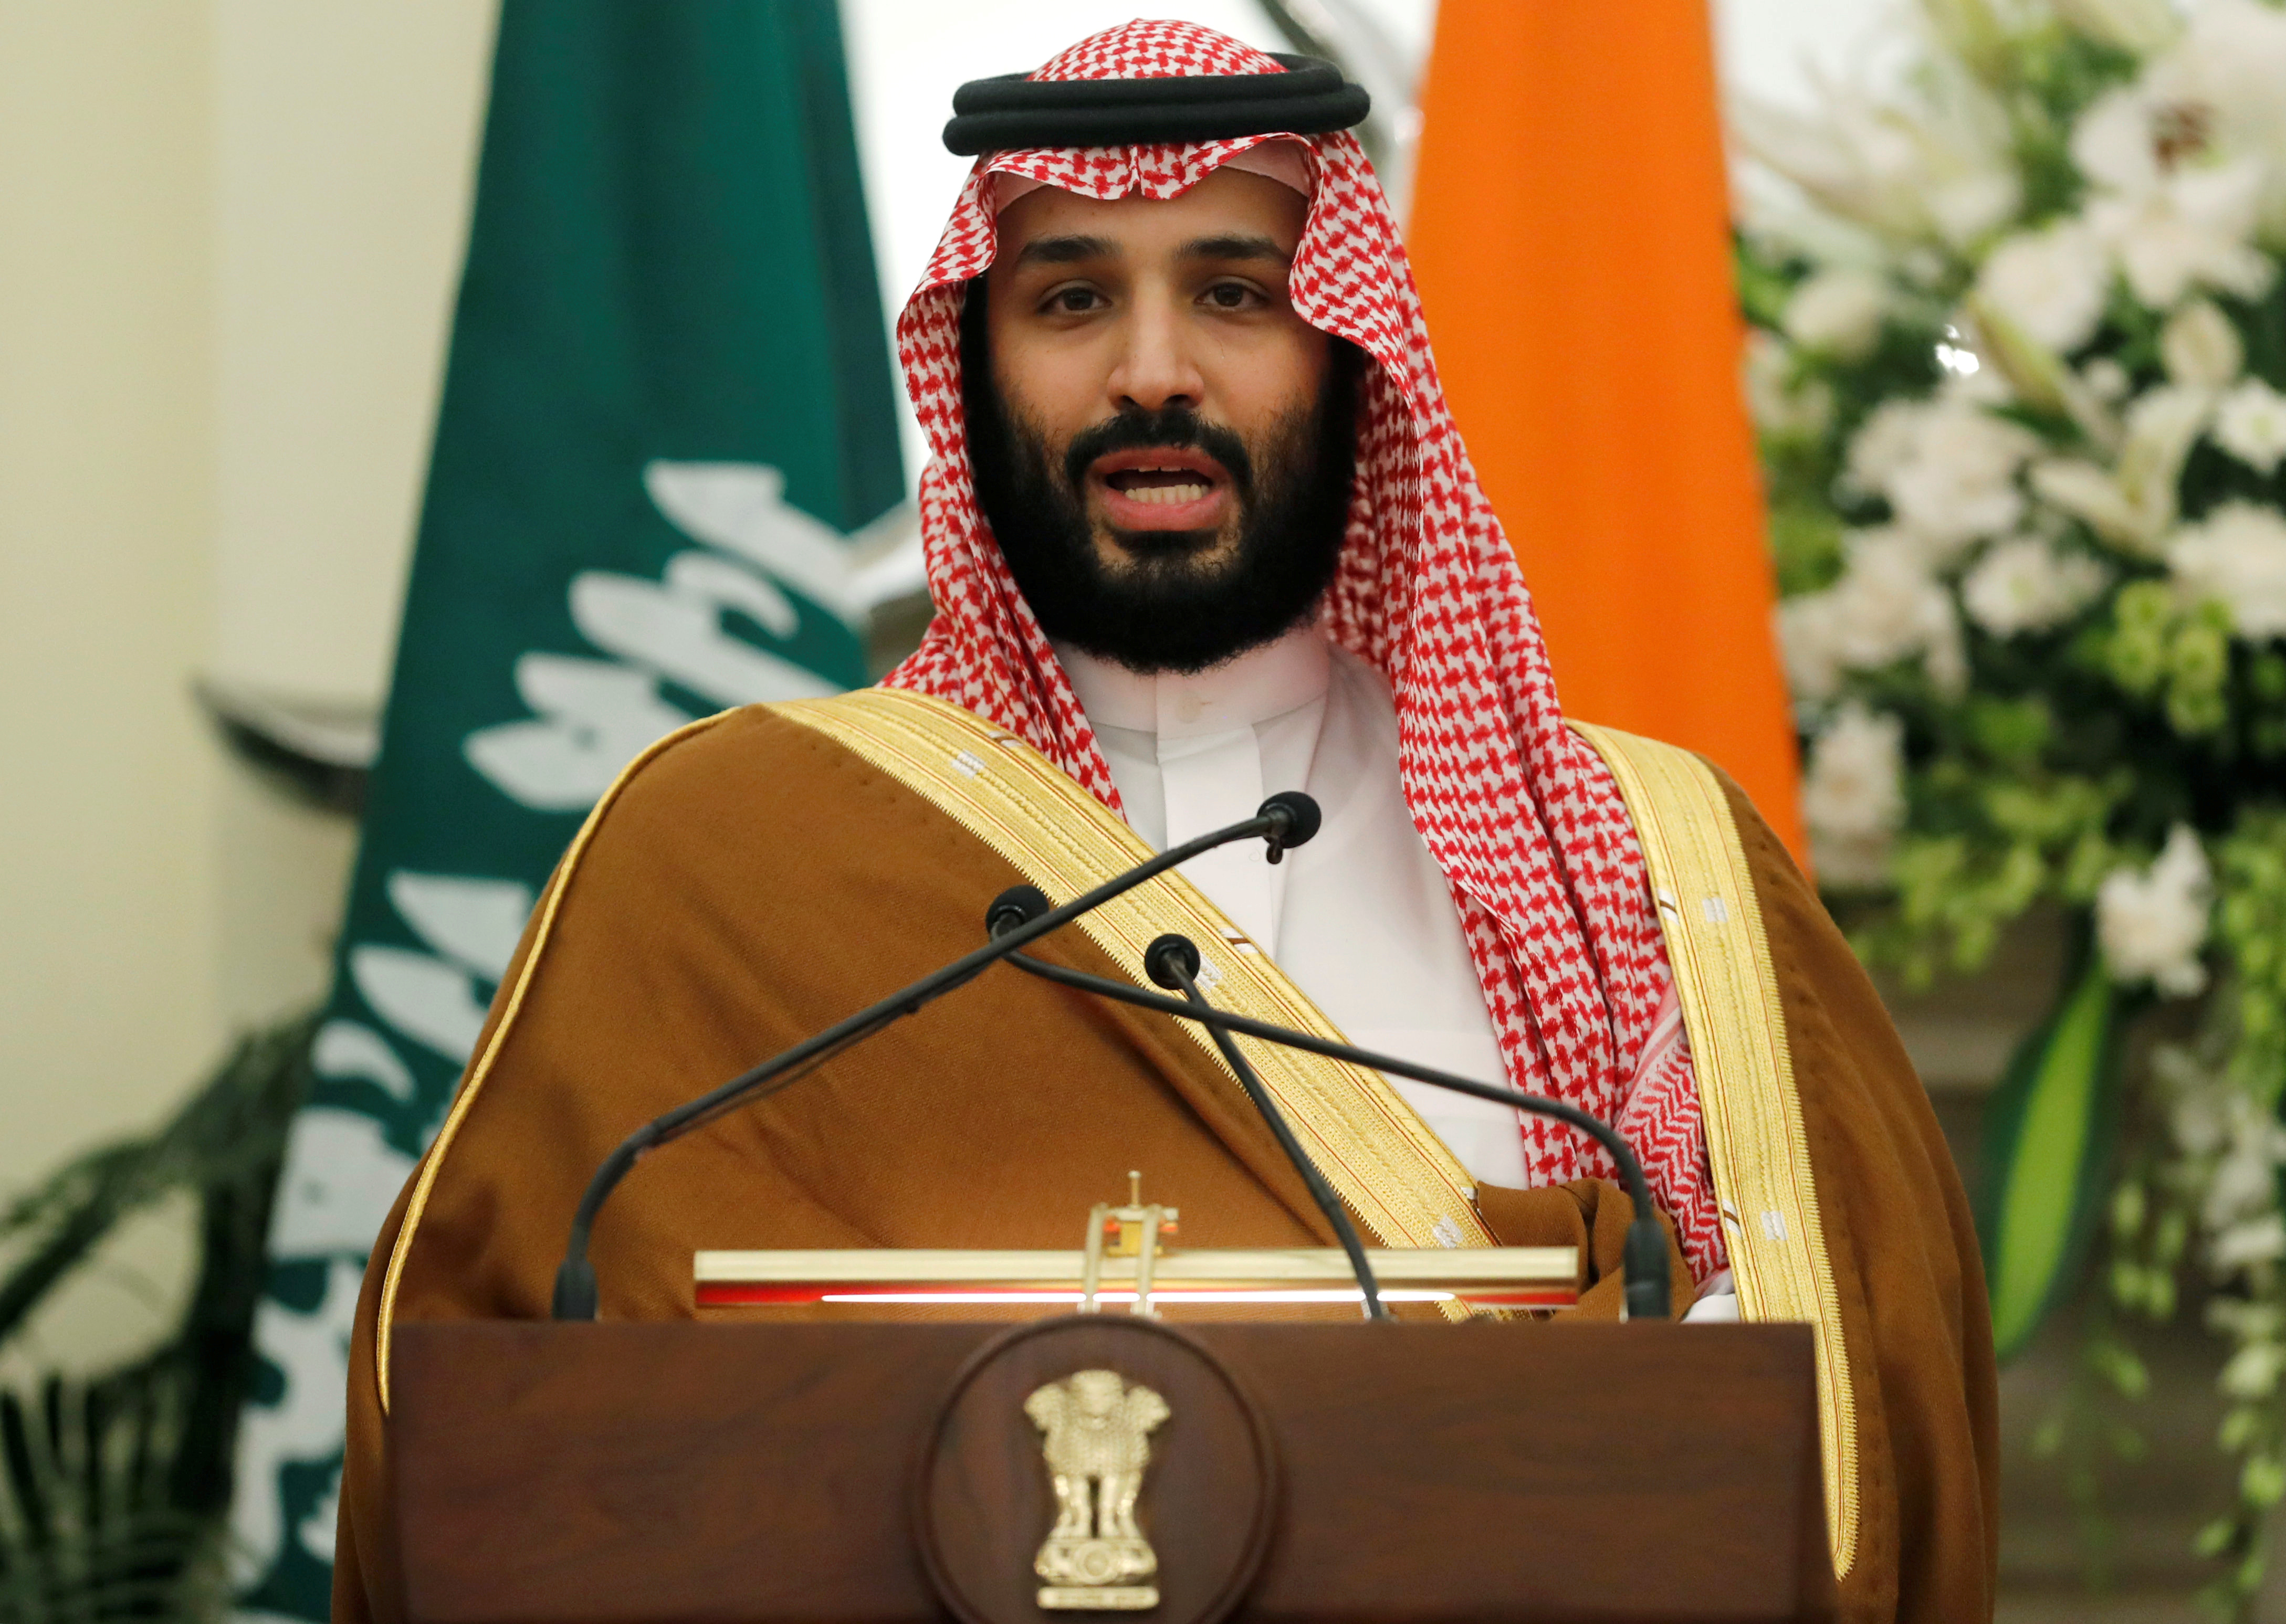 Saudi Arabia's Crown Prince Mohammed bin Salman speaks during a meeting with Indian Prime Minister Narendra Modi at Hyderabad House in New Delhi